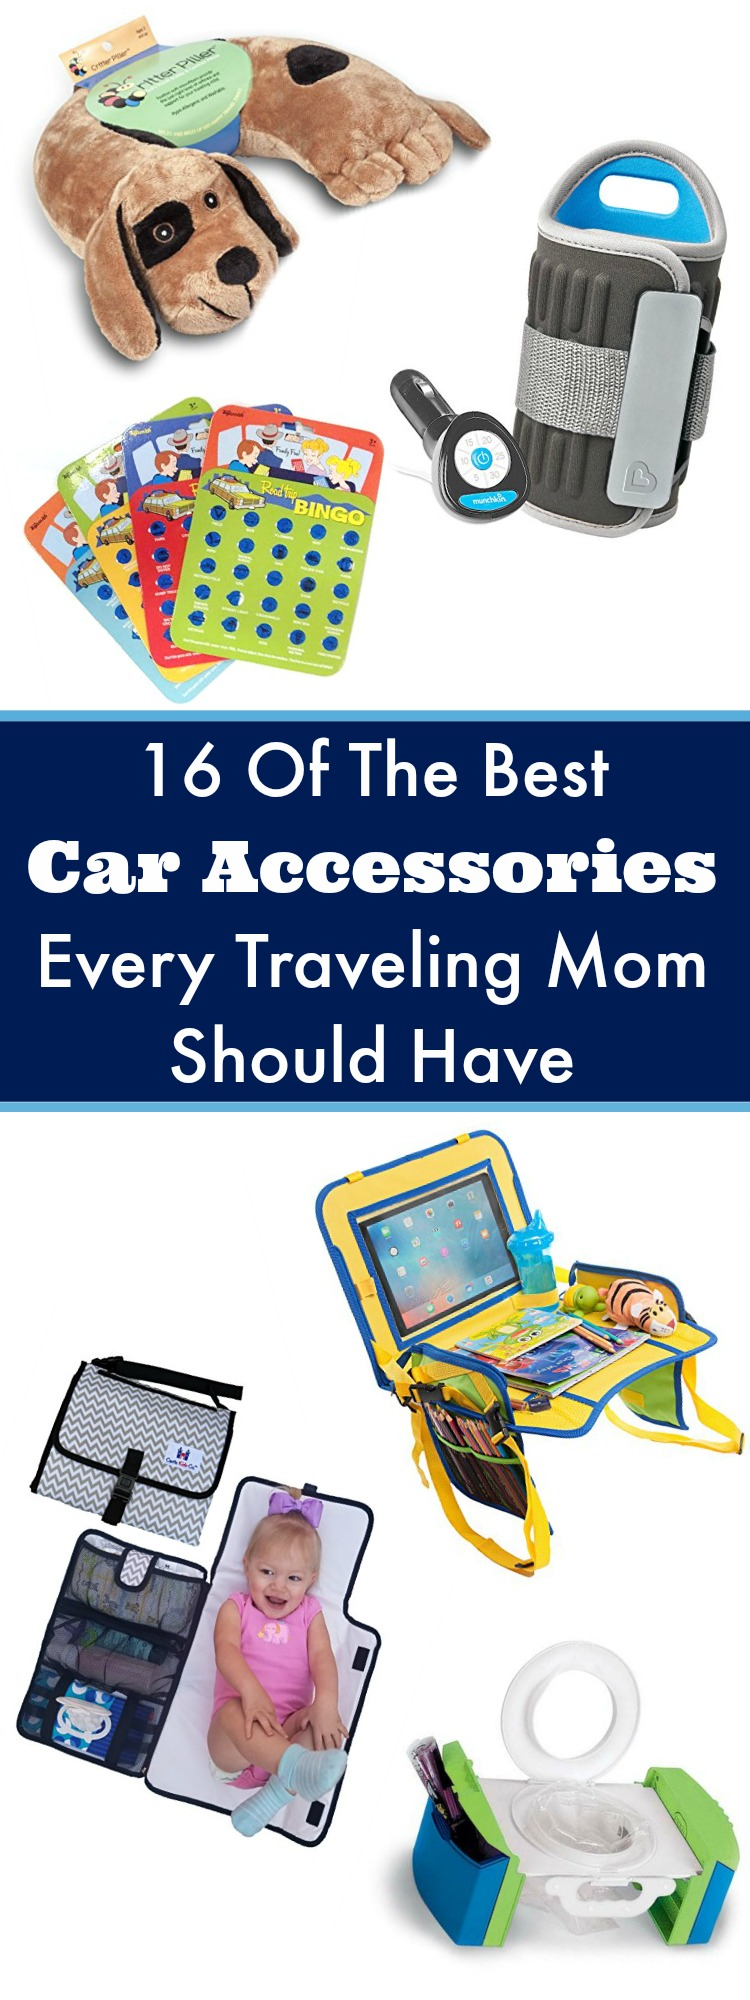 Any road trip can be a success if you bring along the best car accessories.